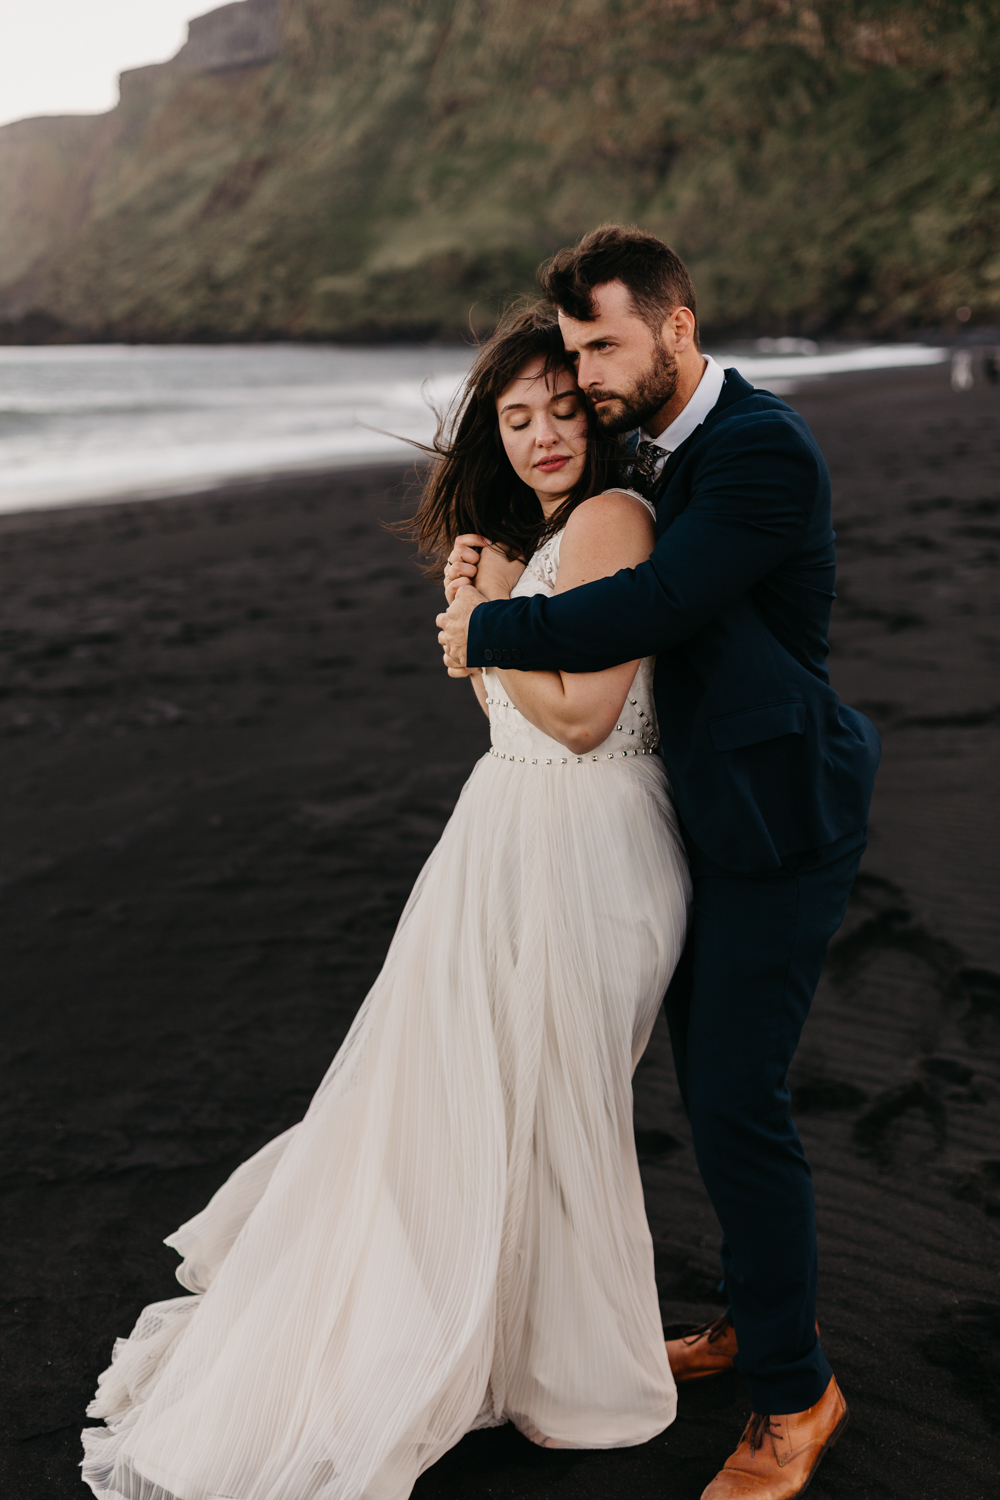 anna szczekutowicz iceland wedding photogapher elopement photographer-108.jpg